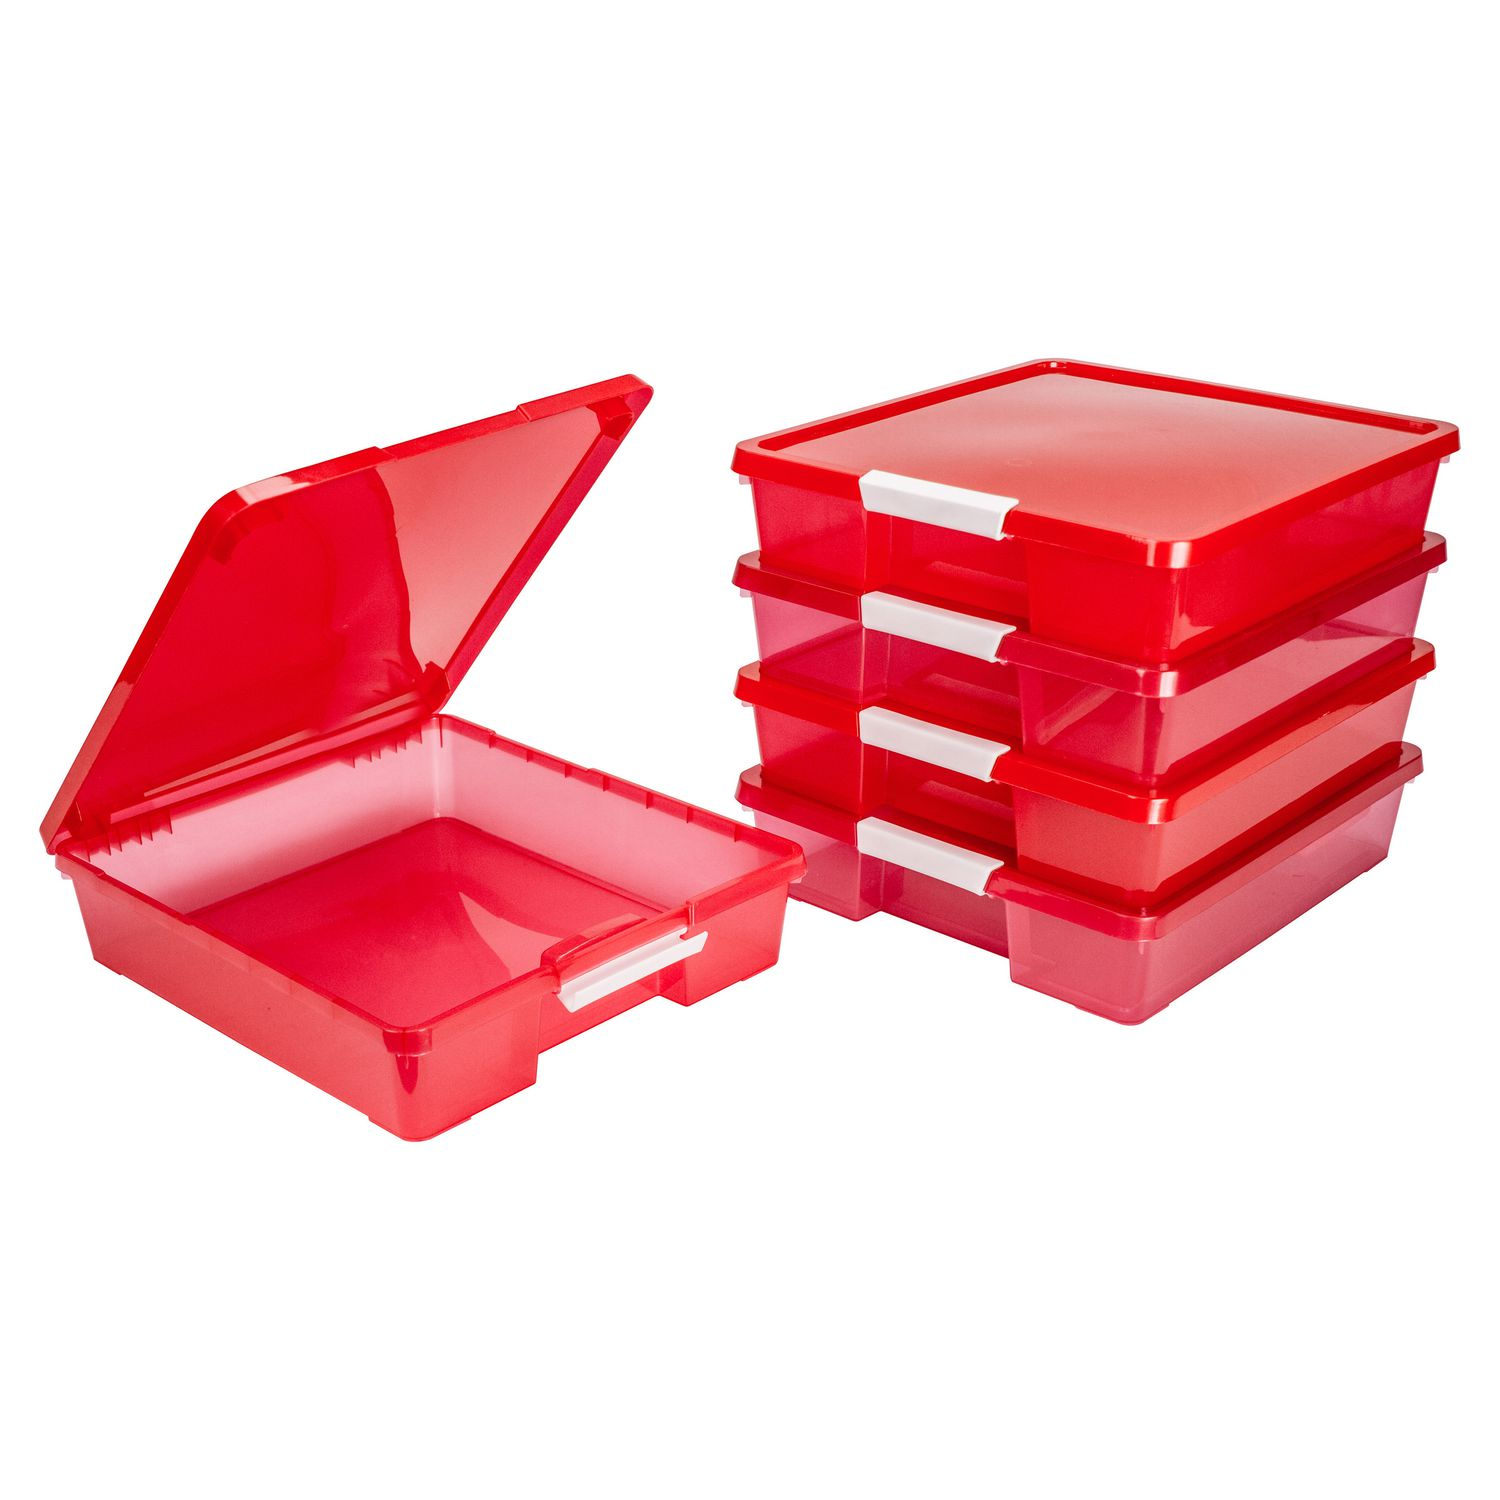 Storex 12x12 Classroom Student Project Box, Tint Red, Case